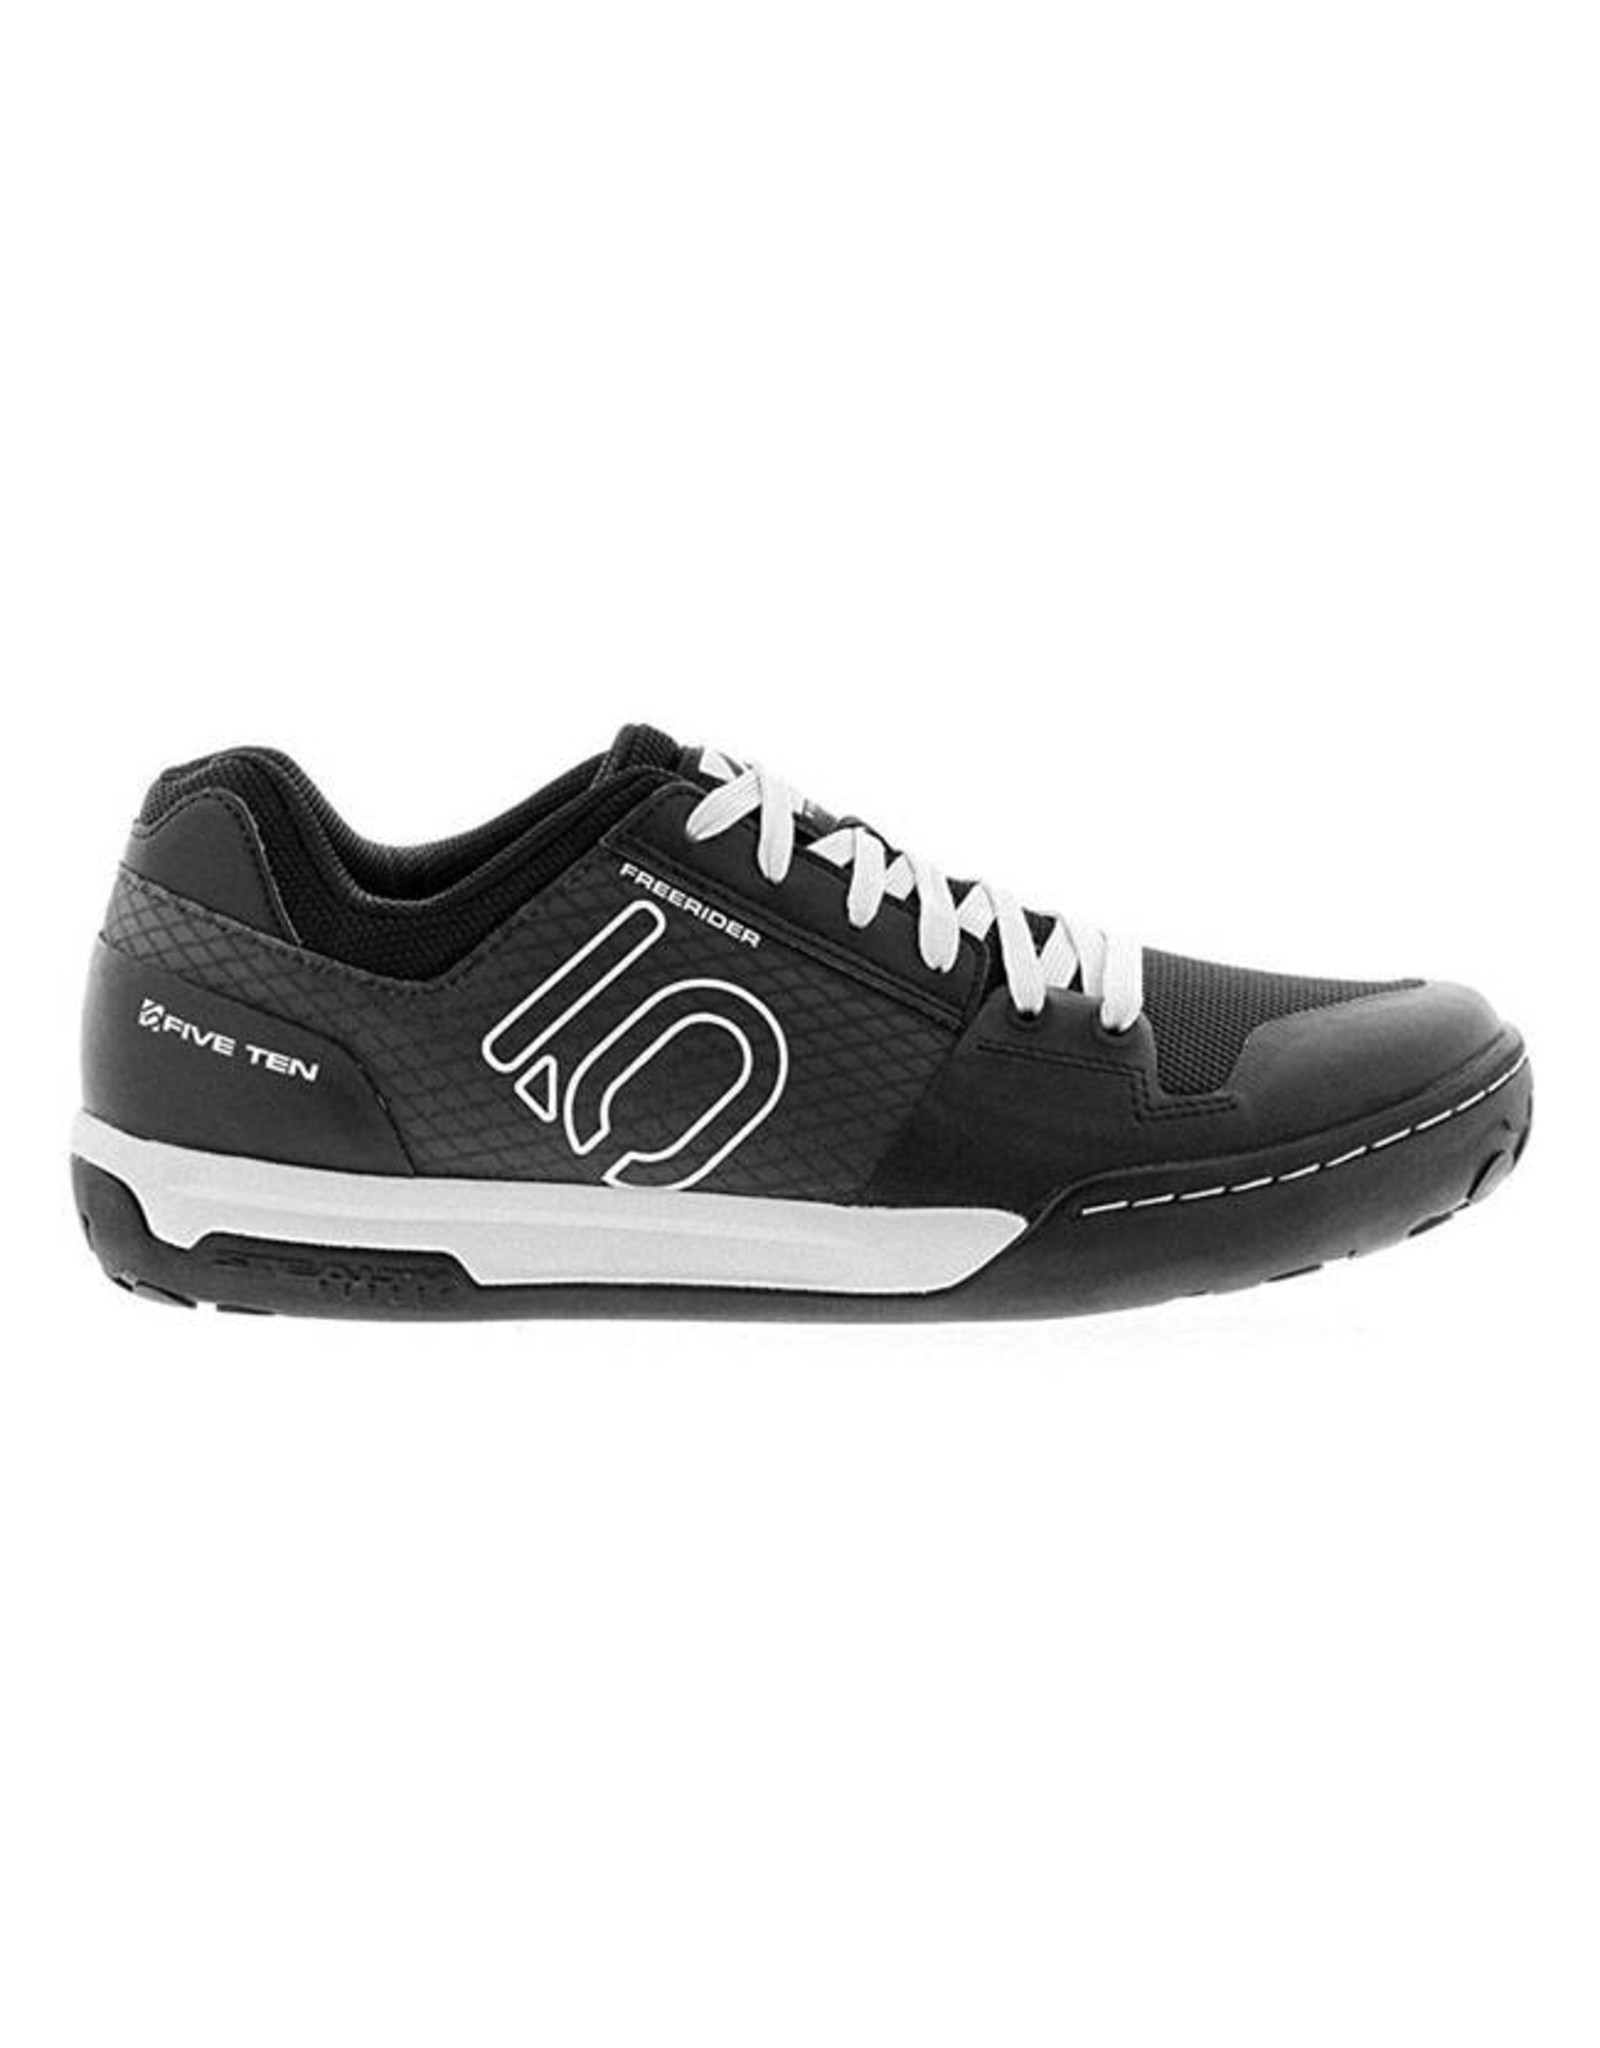 Five Ten Five Ten Freerider Contact Men's Flat Pedal Shoe: Split Black 9